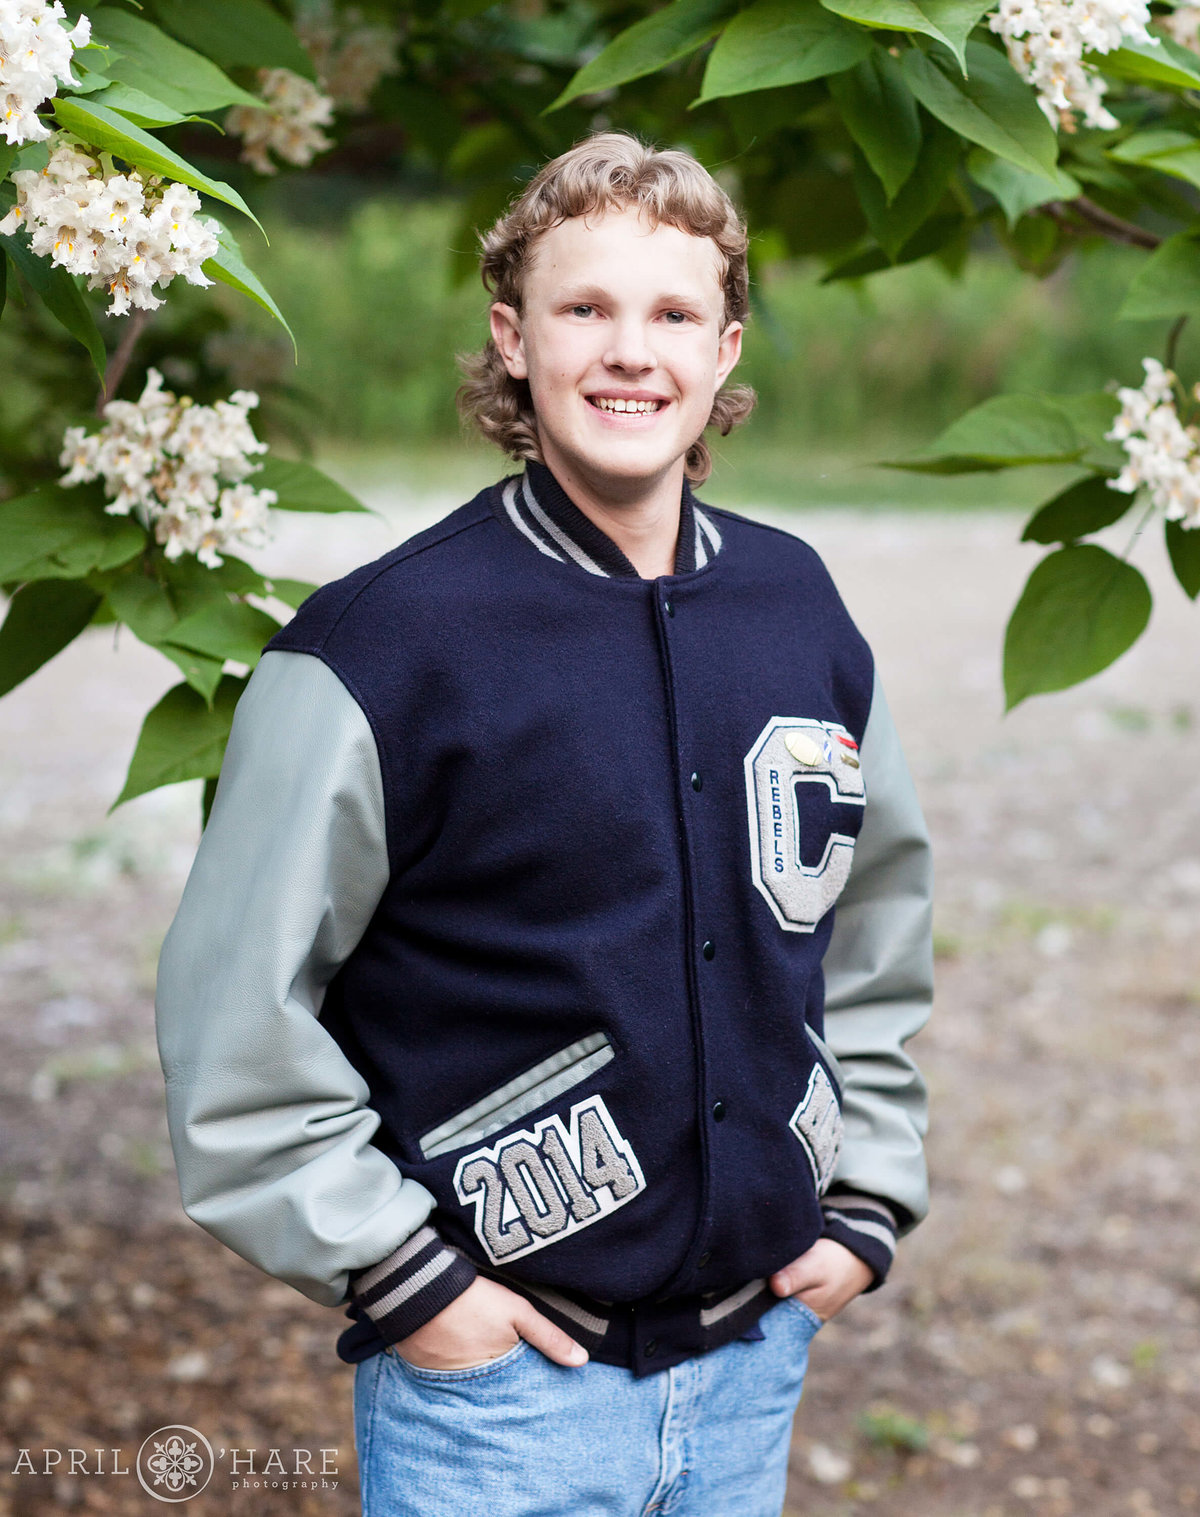 Denver-Colorado-High-School-Senior-Photography-Yearbook-Pictures-10